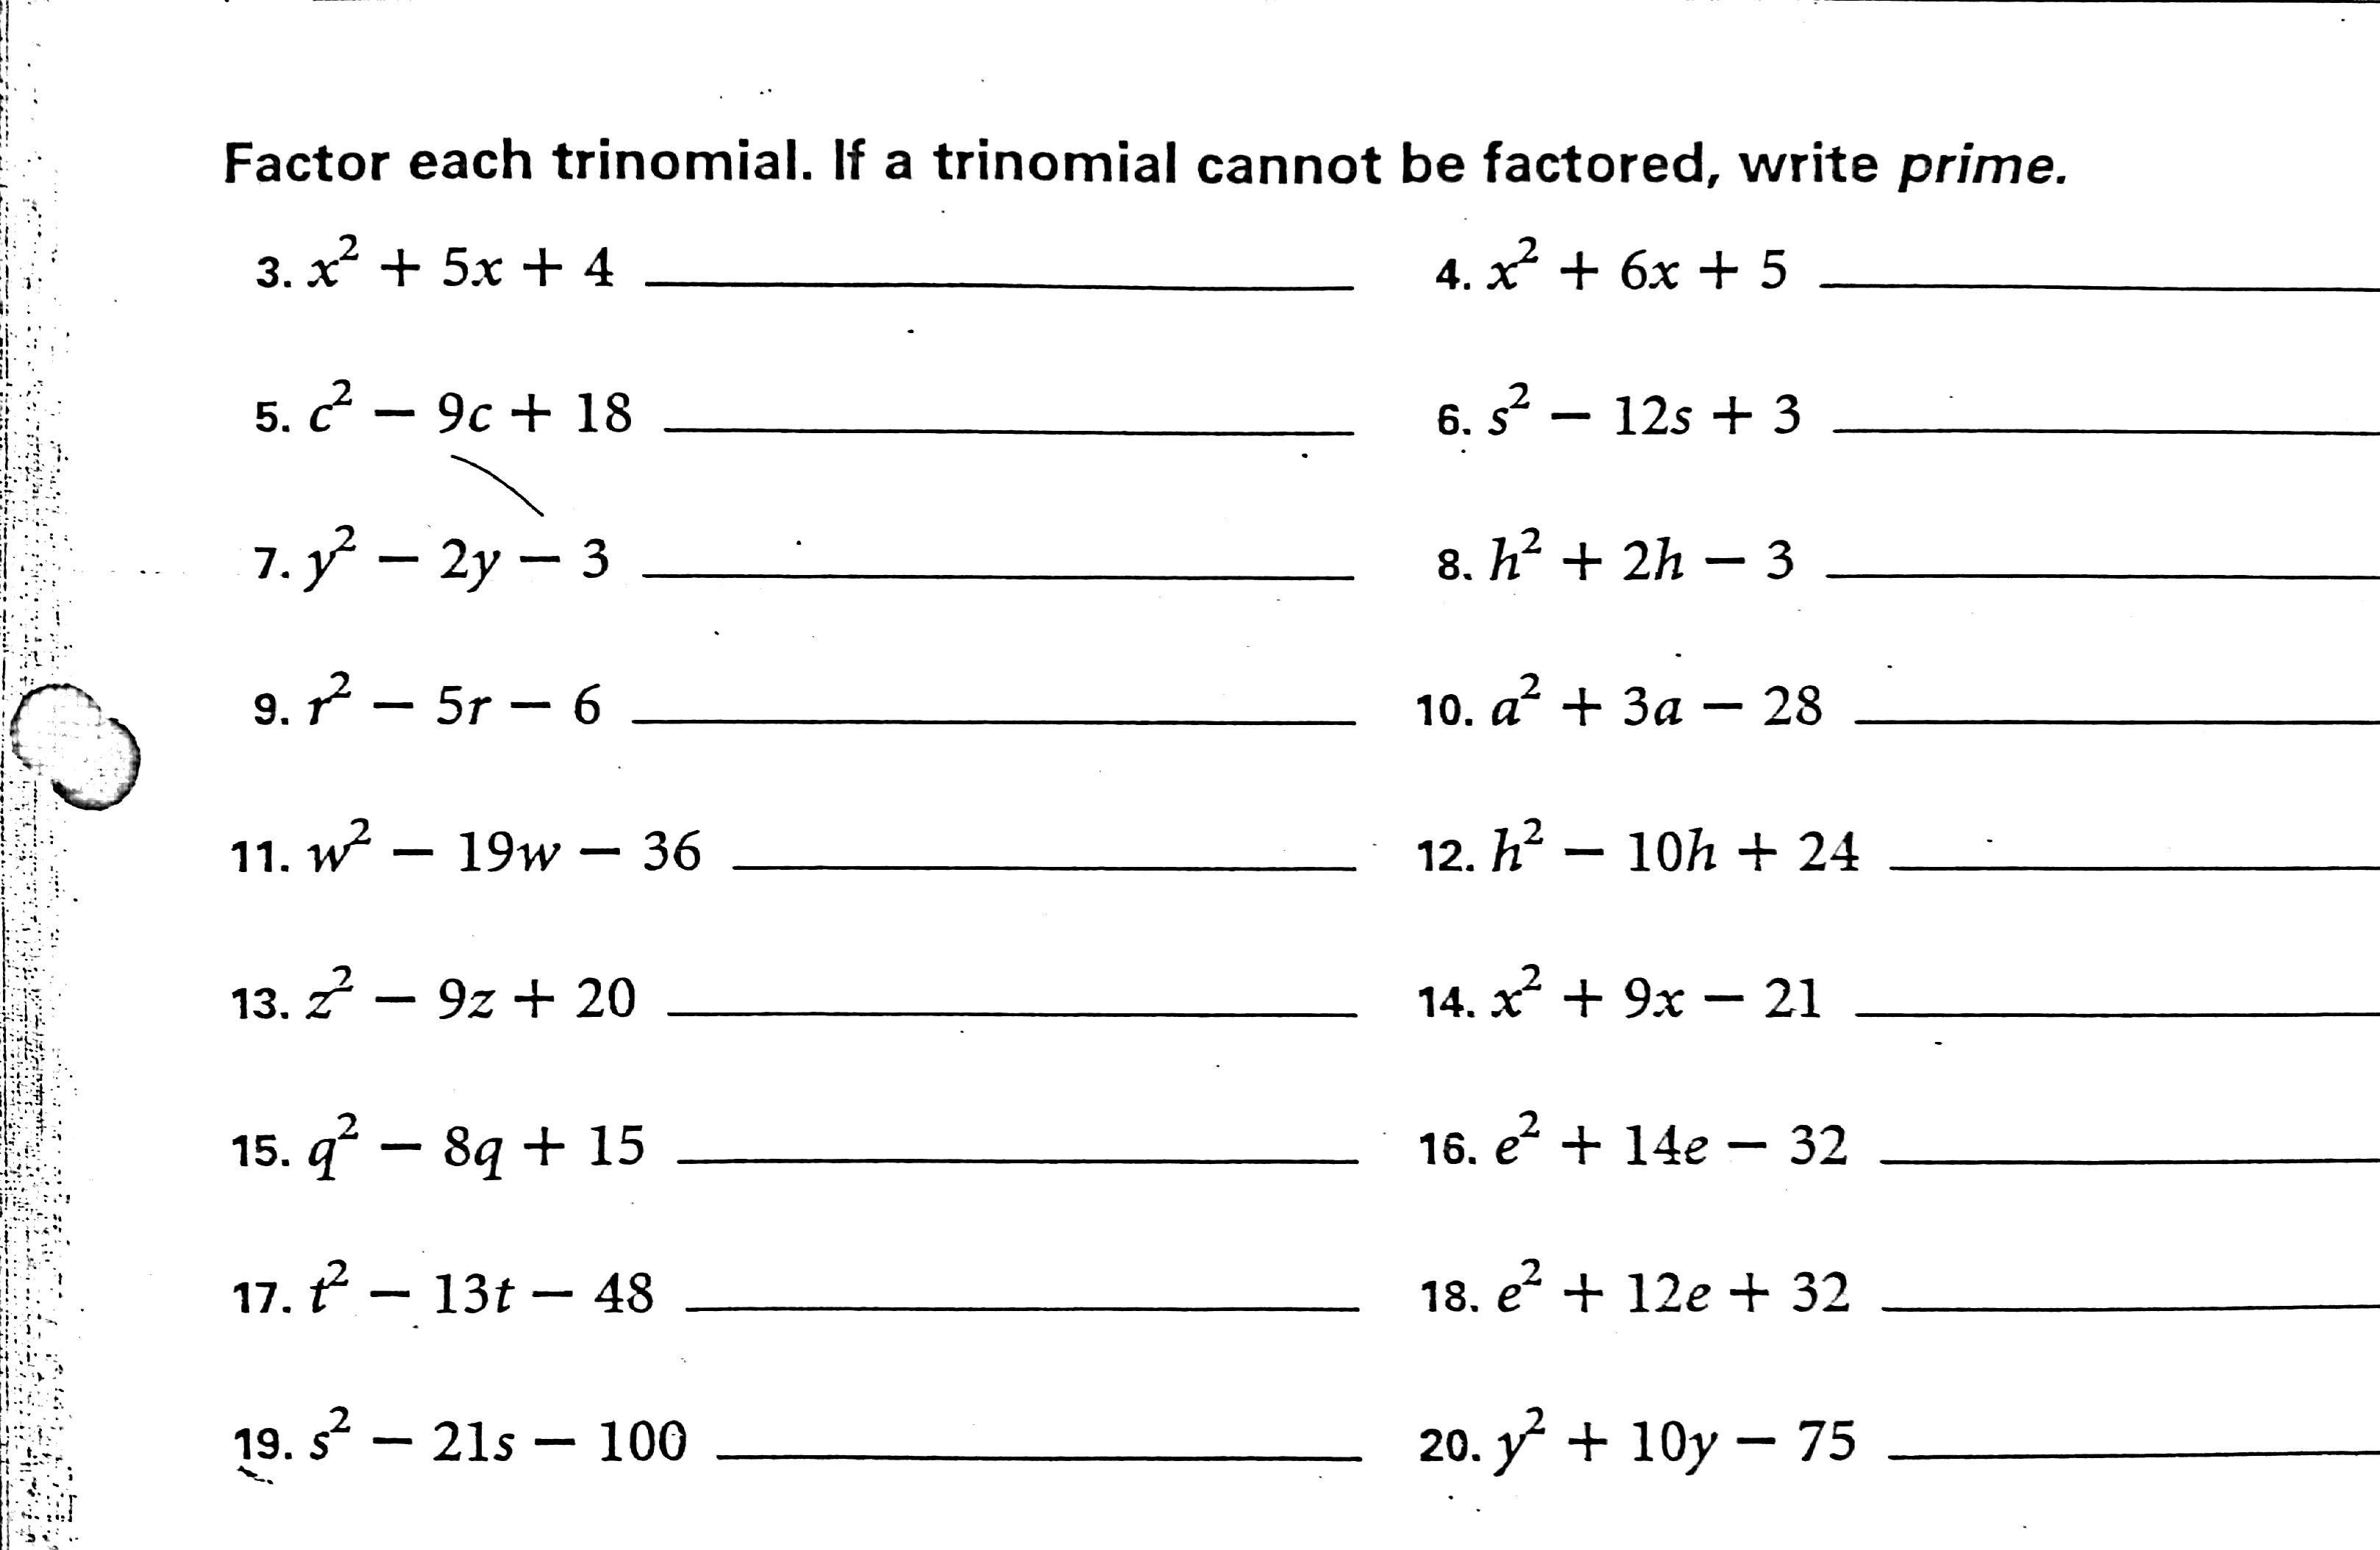 Proatmealus  Nice Factoring Worksheet  Delwfgcom With Gorgeous Factoring Polynomials Practice Worksheet With Answers Coterraneo With Archaic Independent And Dependent Clause Worksheets Also Preschool Handwriting Worksheet Maker In Addition Too Many Tamales Worksheets And Intermediate Algebra Worksheets With Answers As Well As Free Family Budget Worksheet Additionally Unprotect Worksheet Vba From Delwfgcom With Proatmealus  Gorgeous Factoring Worksheet  Delwfgcom With Archaic Factoring Polynomials Practice Worksheet With Answers Coterraneo And Nice Independent And Dependent Clause Worksheets Also Preschool Handwriting Worksheet Maker In Addition Too Many Tamales Worksheets From Delwfgcom